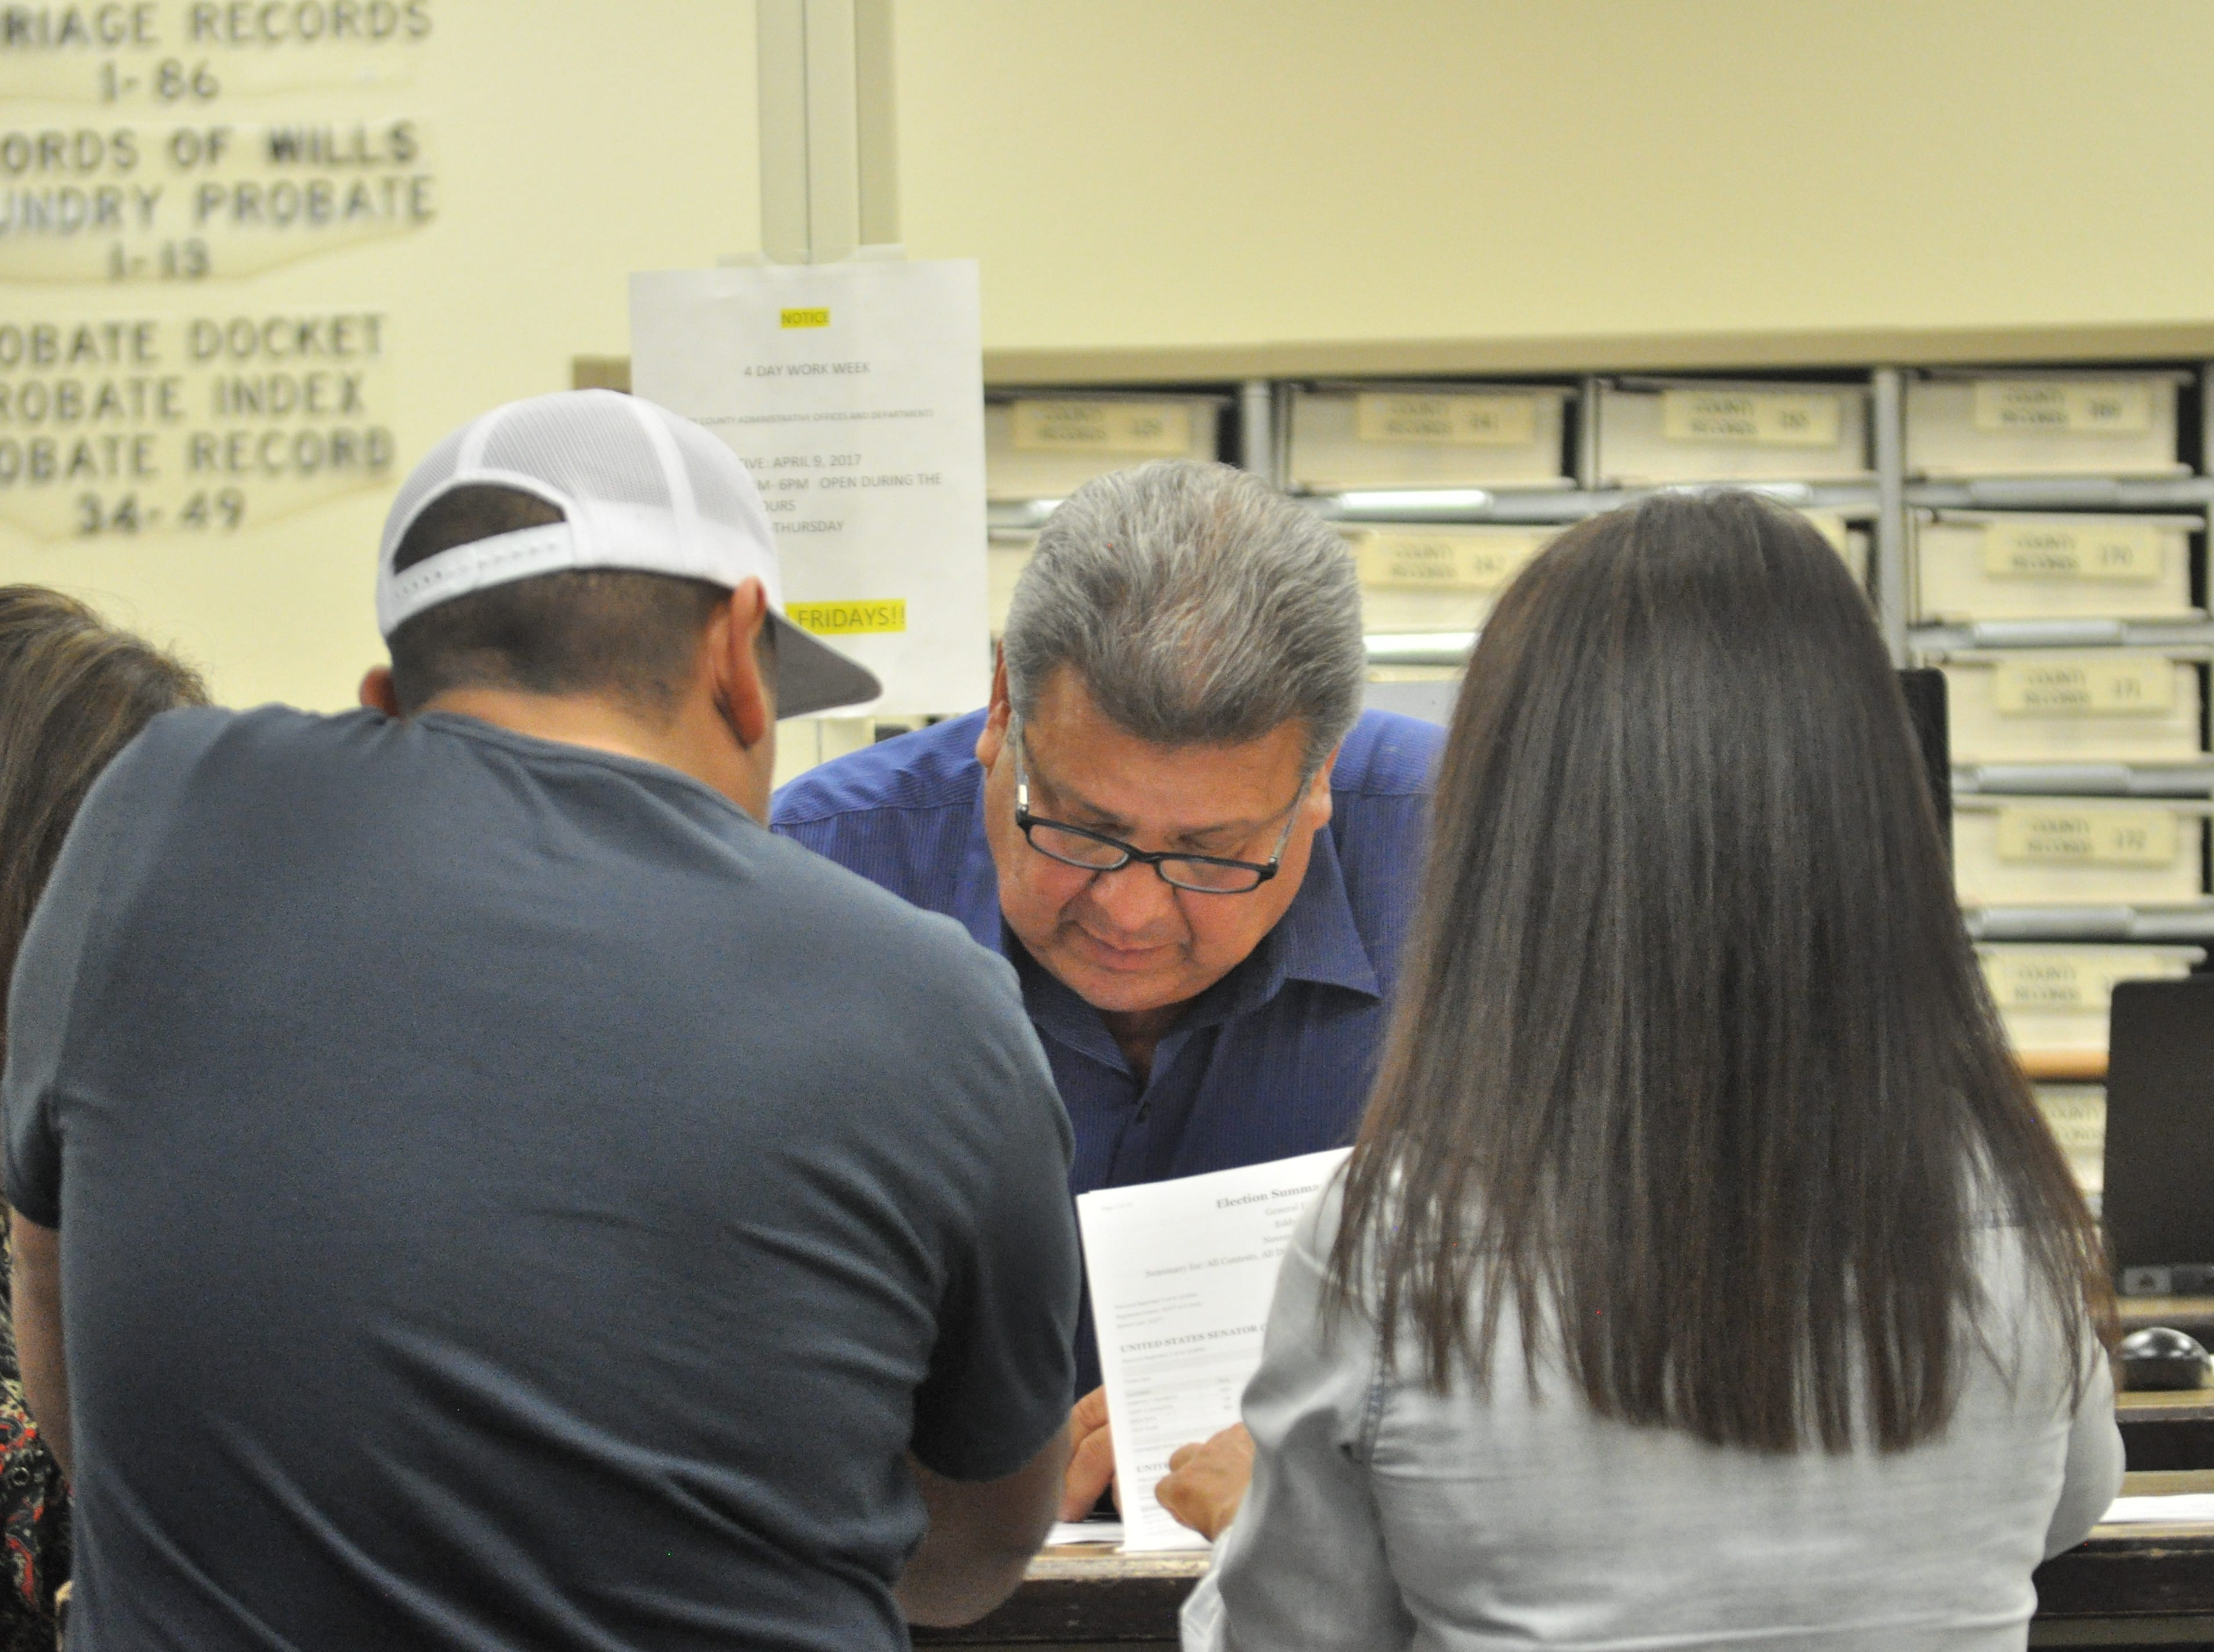 Tony Hernandez, Democratic candidate for Eddy County Board of Commissioner District 1, reviews early voting numbers Oct. 6 at the Eddy County Clerk's Office.